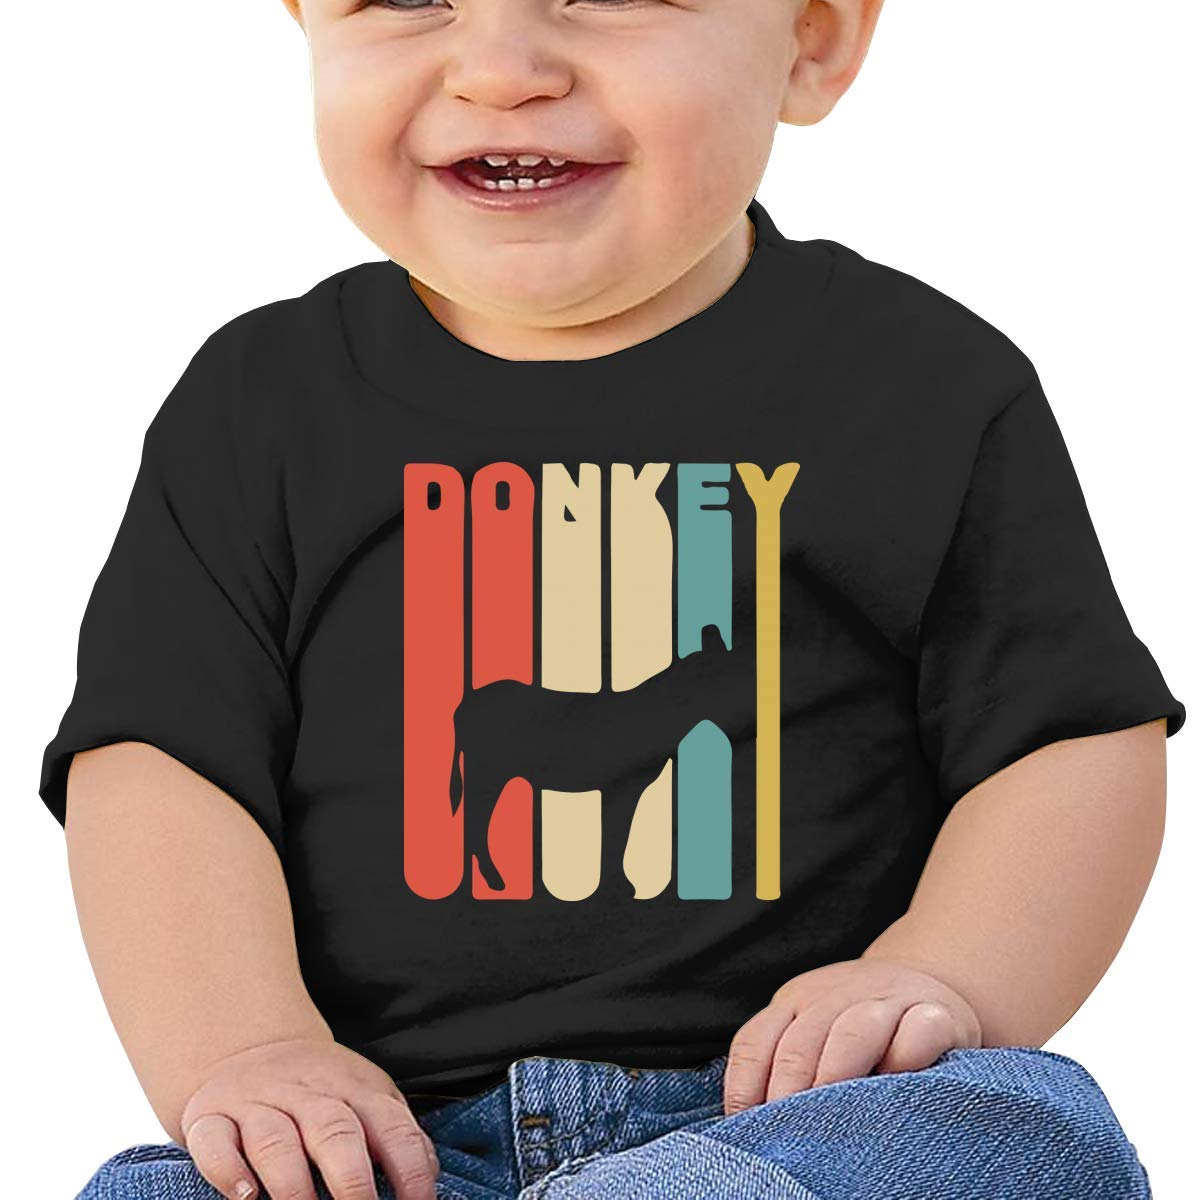 Retro Donkey Newborn Baby Newborn Short Sleeve T Shirts 6-24 Month Soft Tops